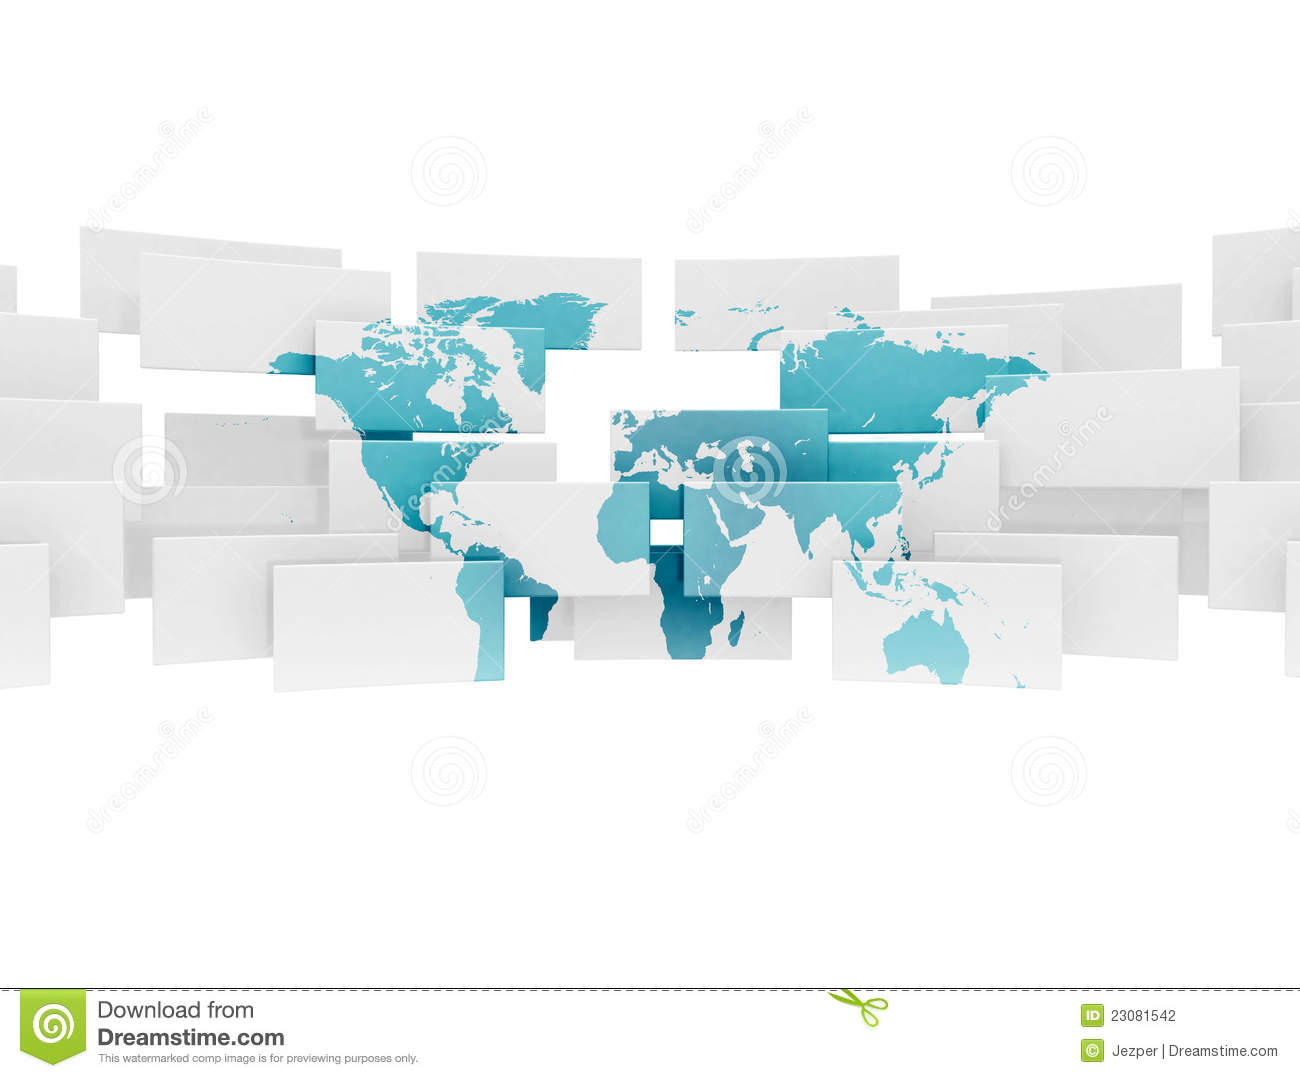 Abstract world map illustration stock illustration illustration abstract world map illustration gumiabroncs Choice Image